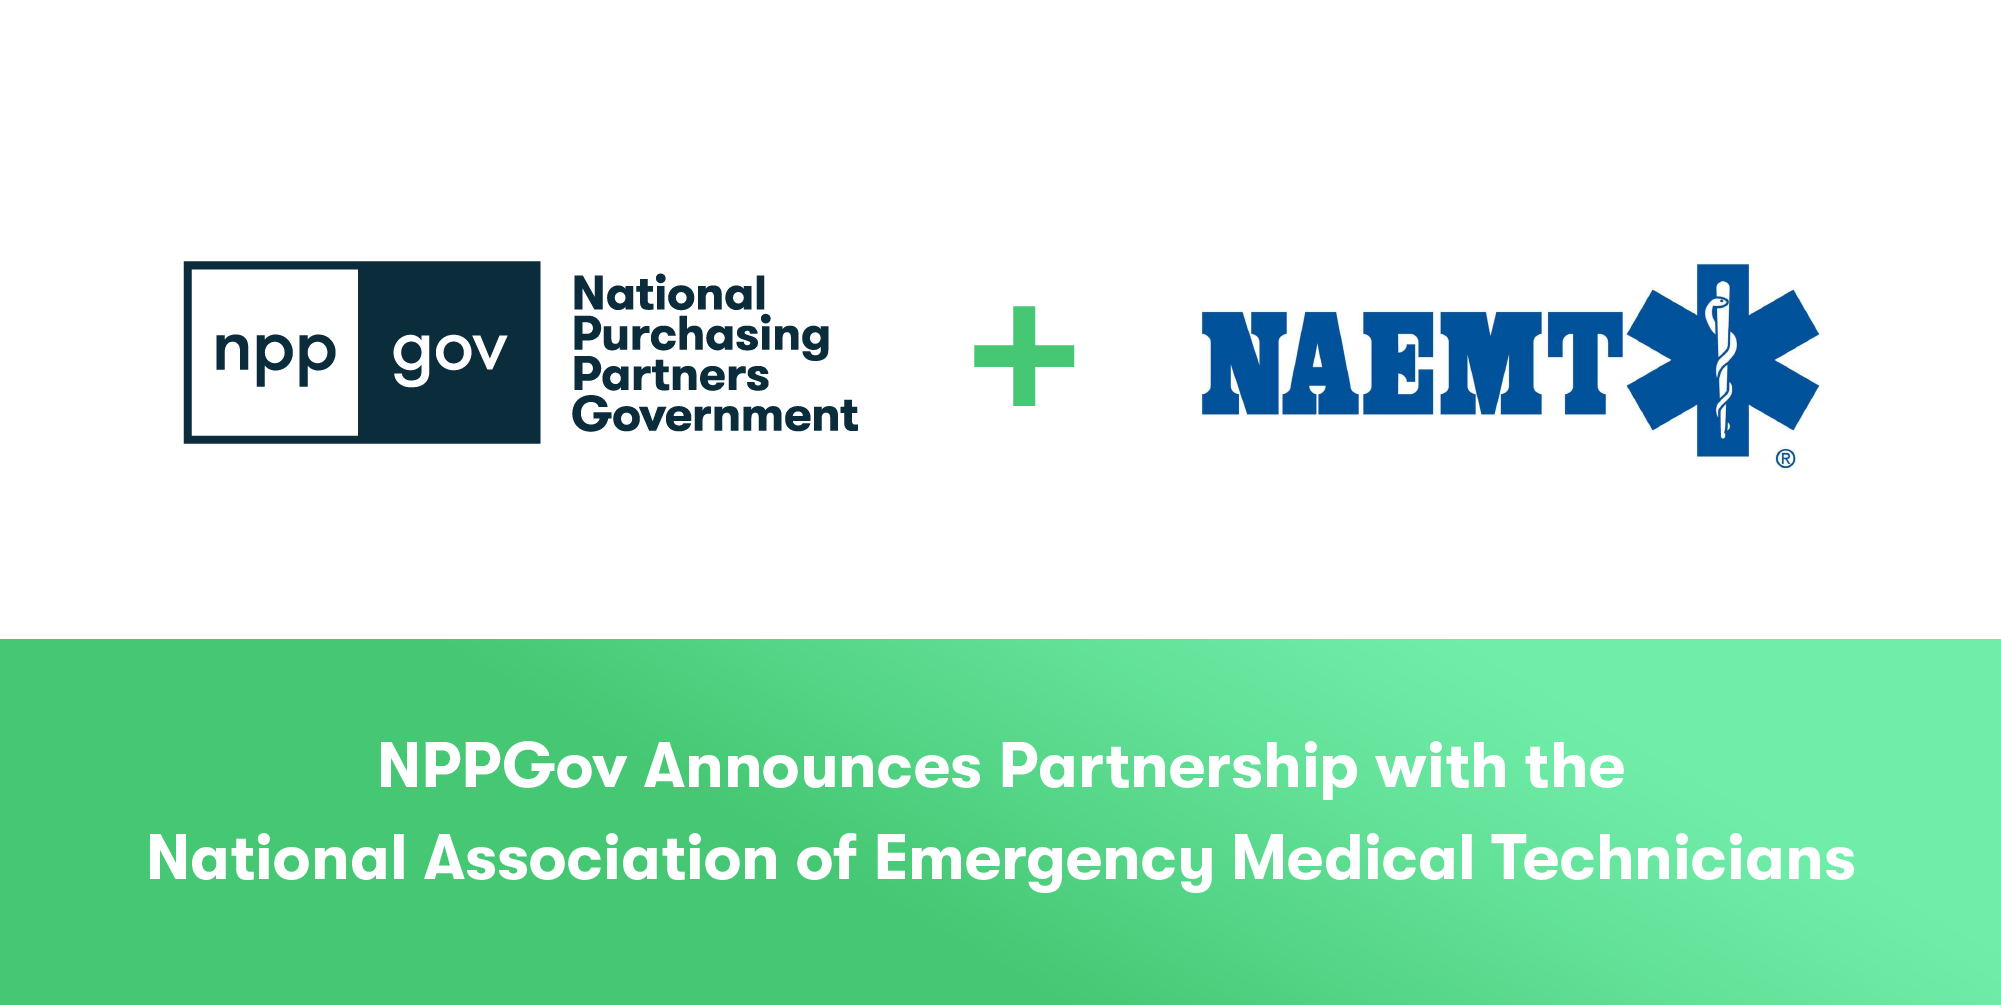 NPPGov Public Safety GPO Partners with NAEMT To Provide Members with Competitive Product and Service Agreements and Supplier Discounts